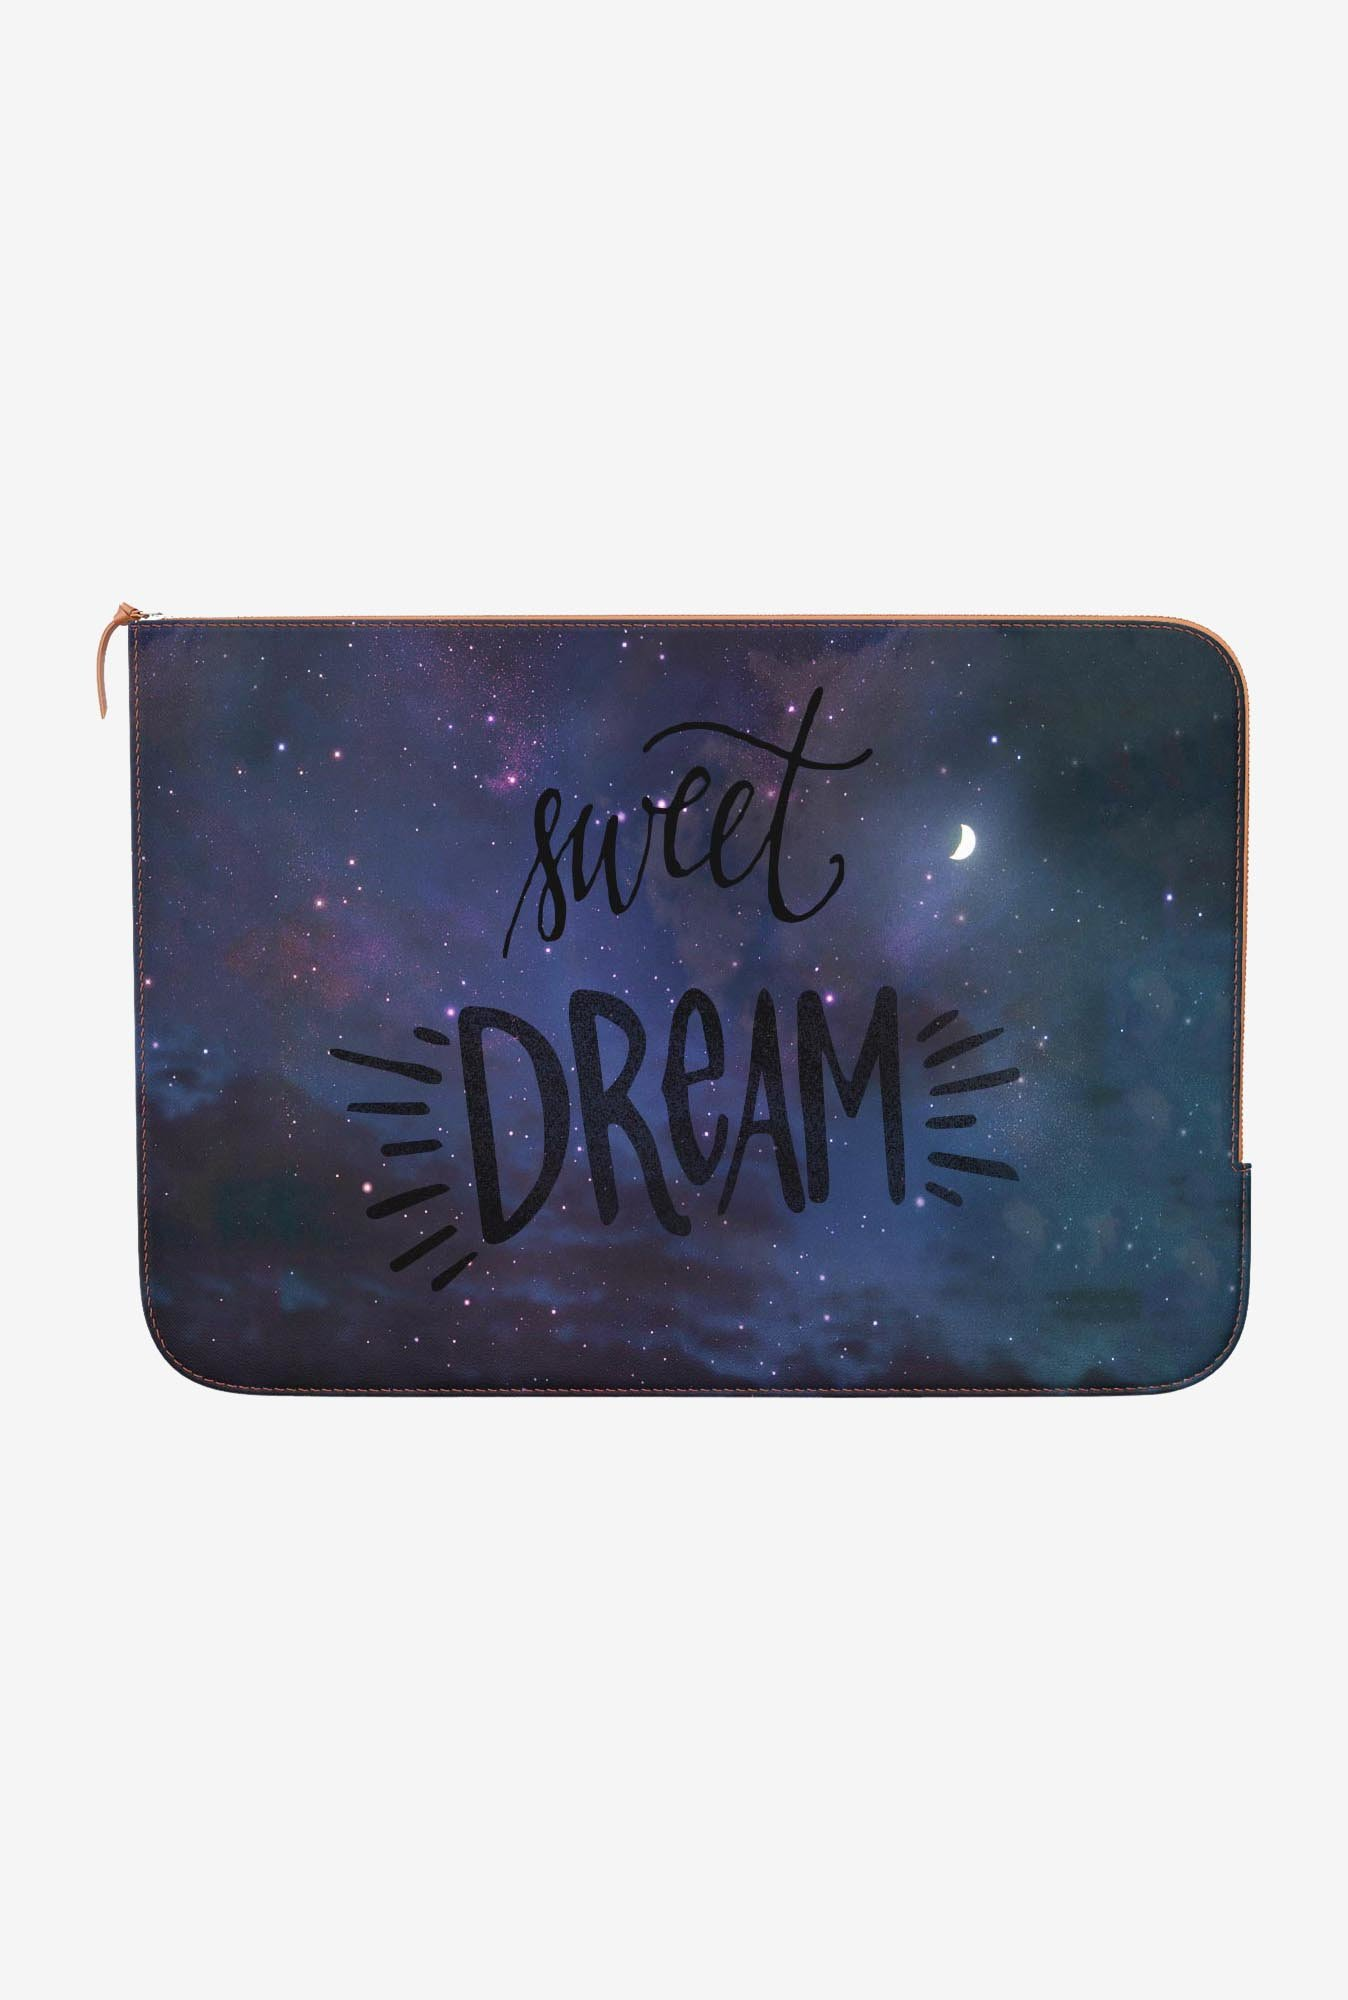 DailyObjects Sweet Dream MacBook Air 11 Zippered Sleeve